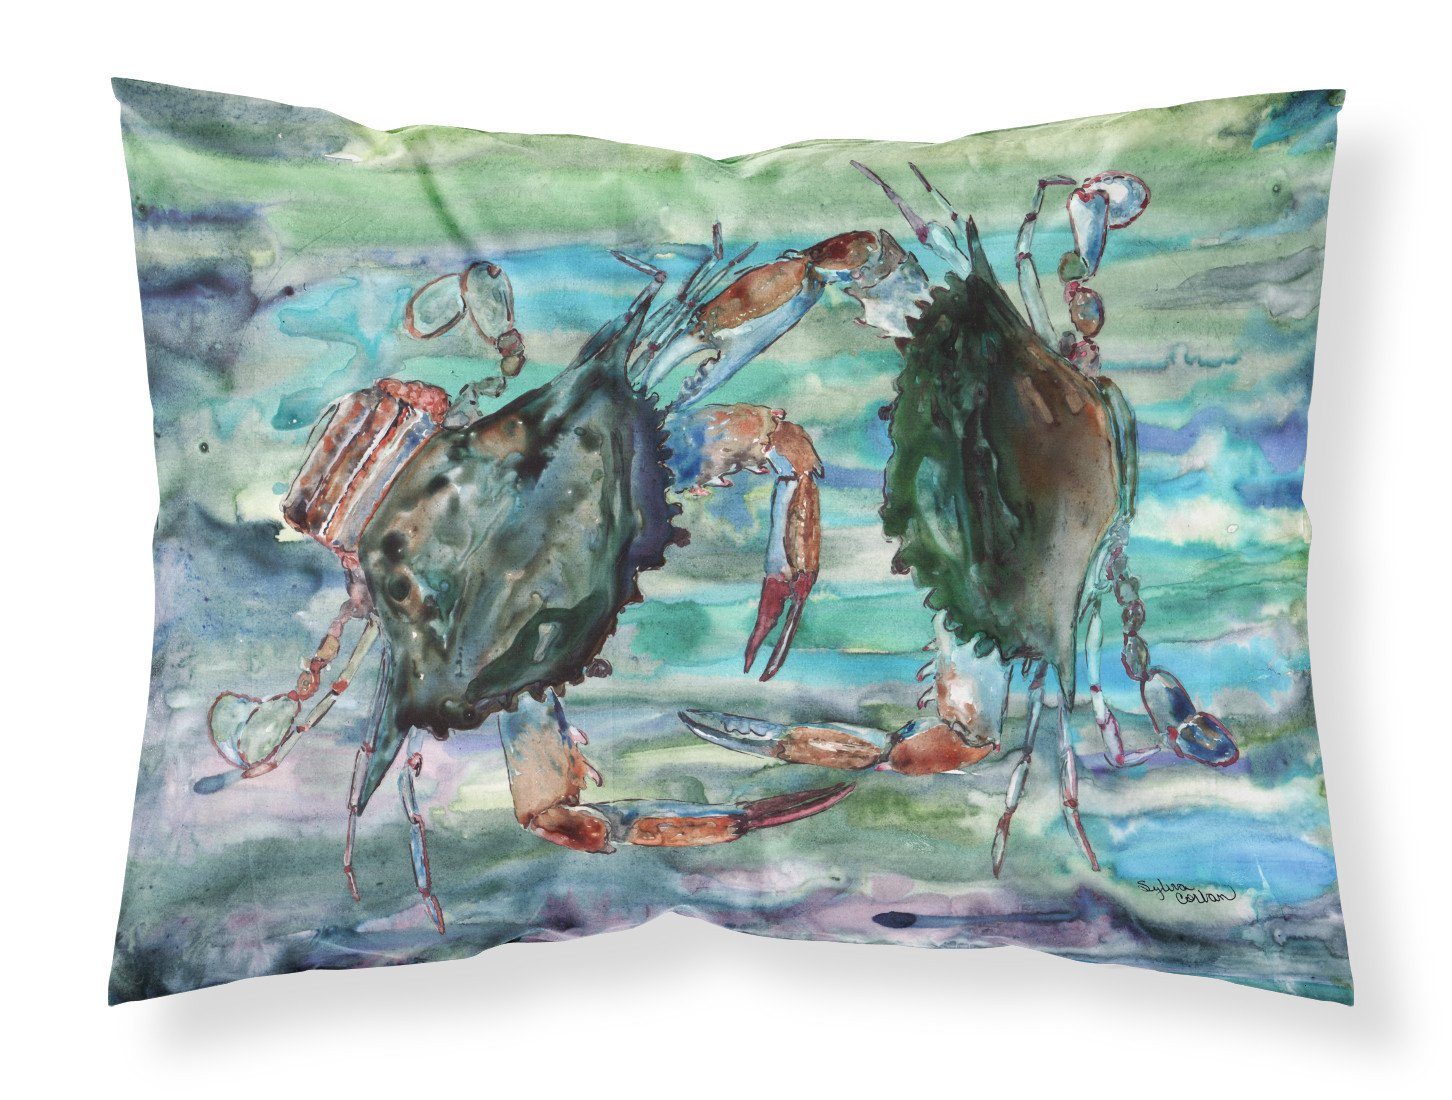 Buy this Watery Teal and Purple Crabs Fabric Standard Pillowcase 8954PILLOWCASE